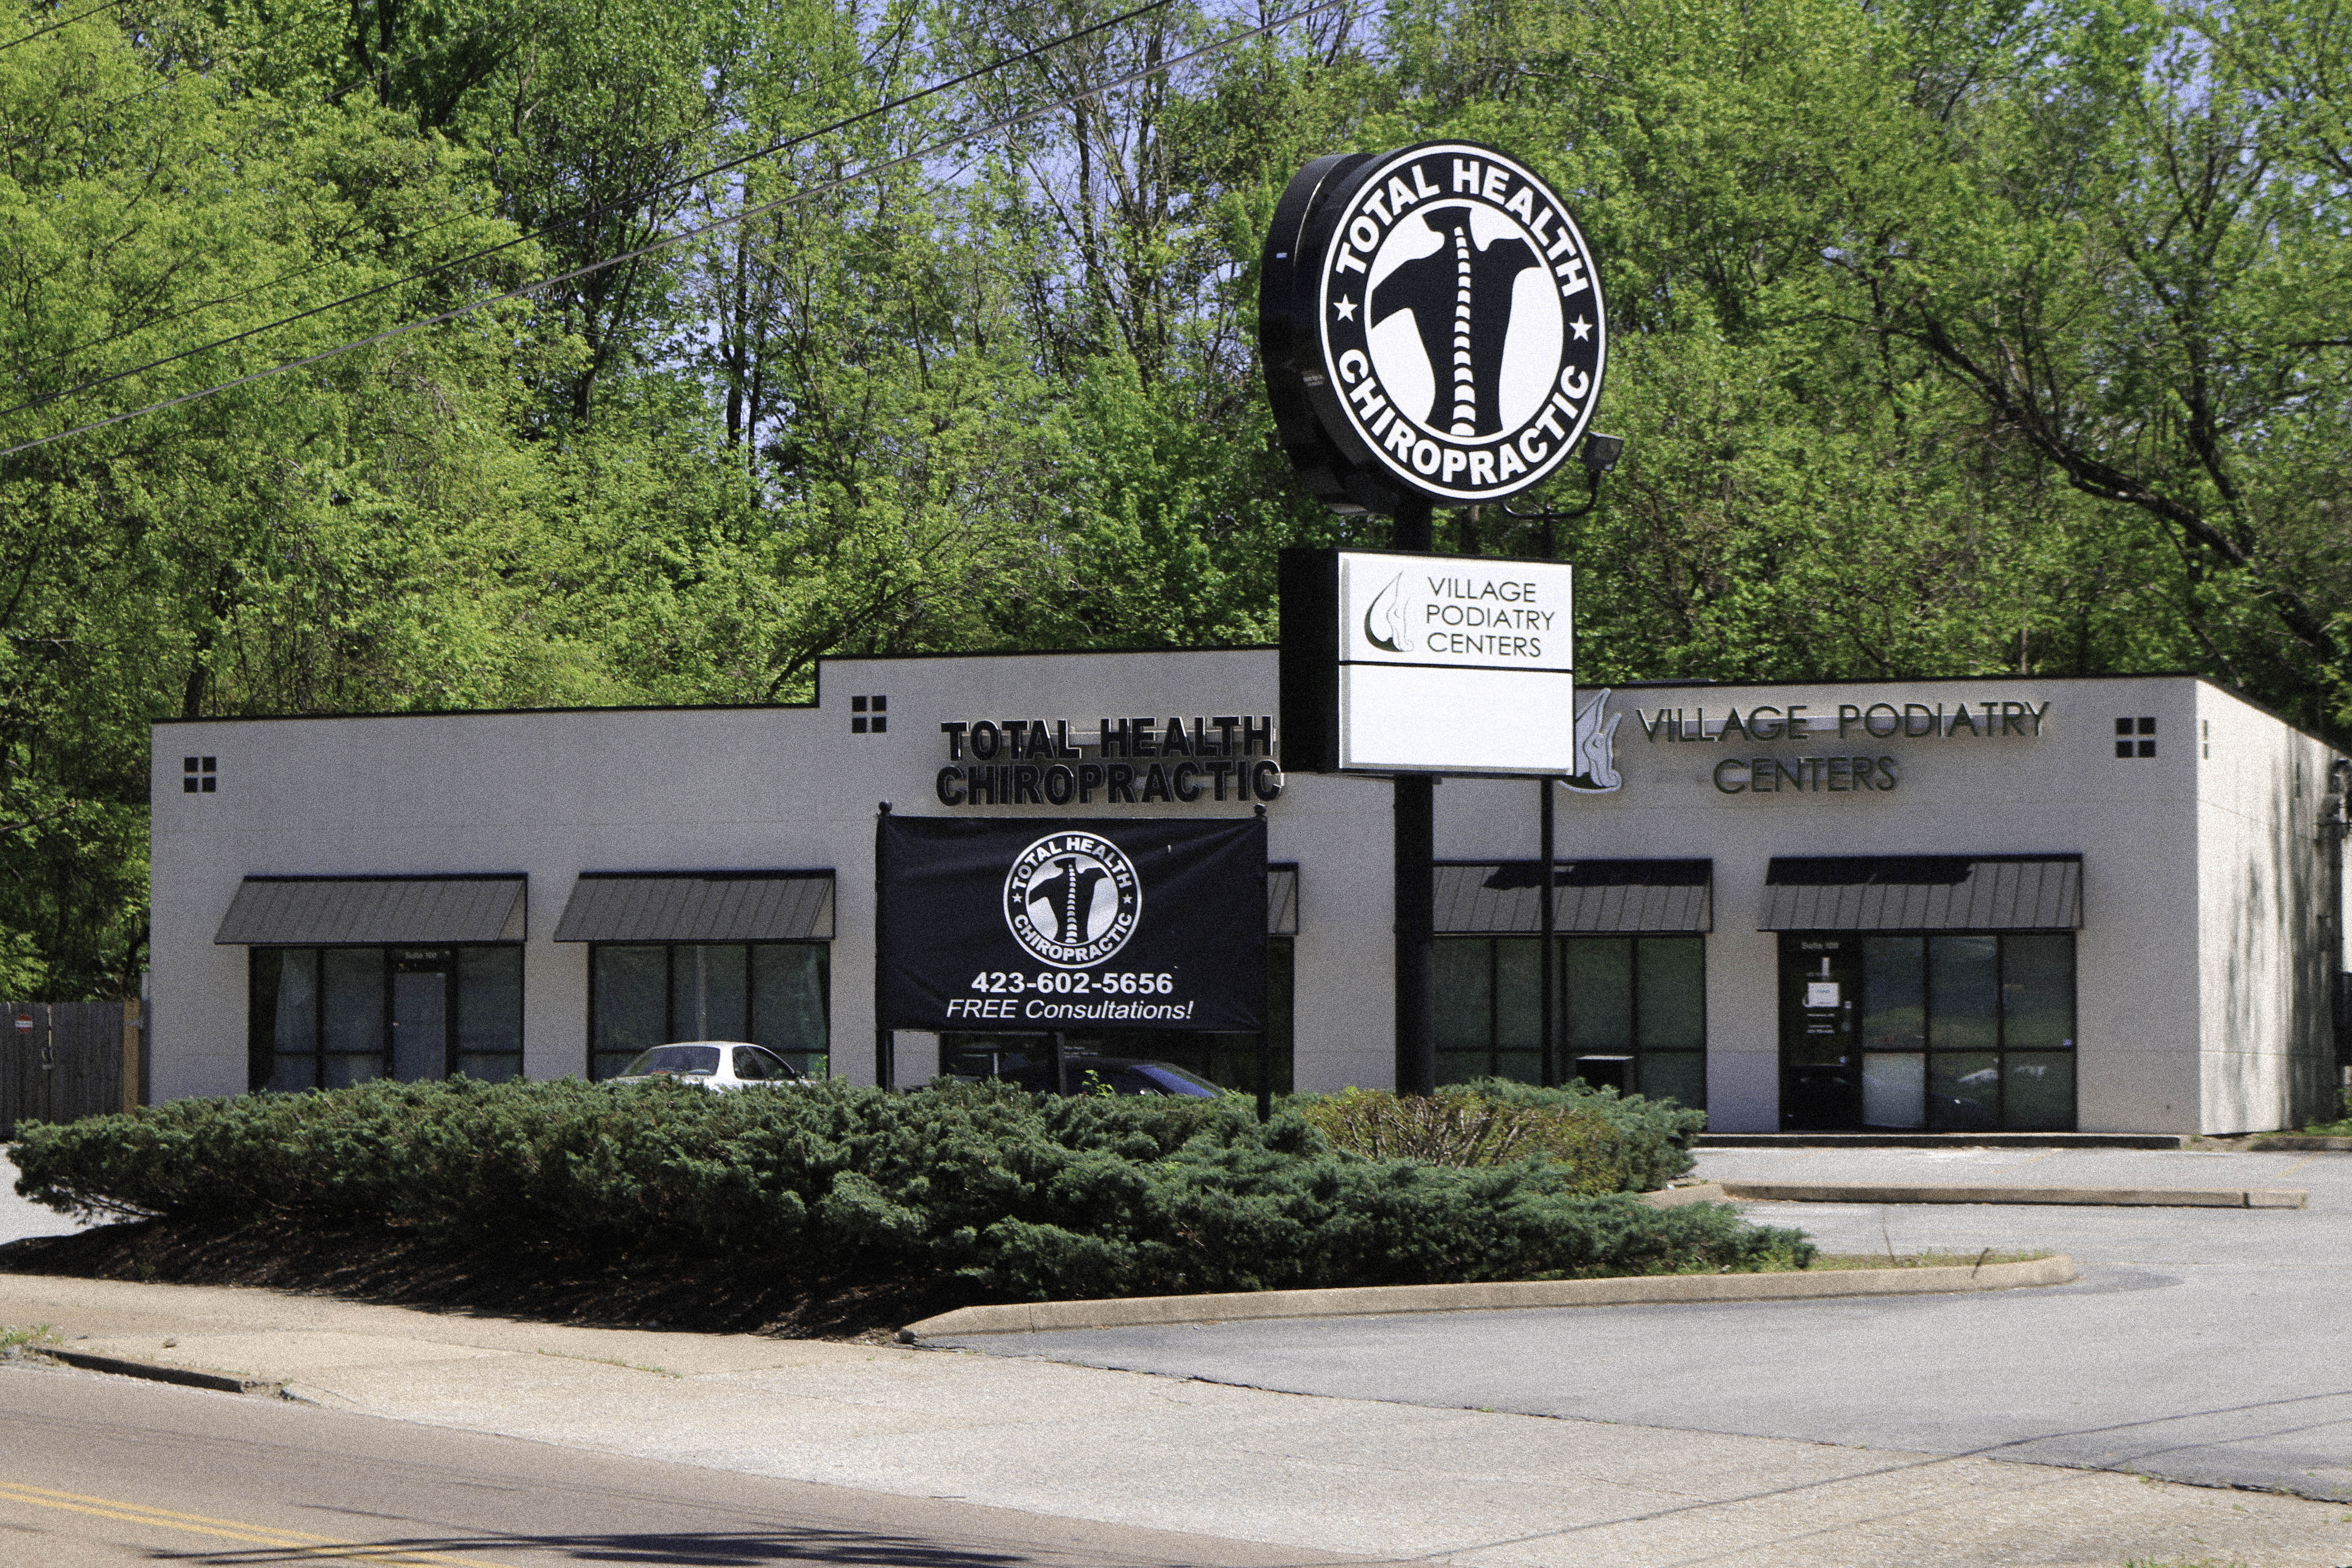 Total Health Chiropractic St Elmo 3742 Tennessee Ave Ste 104 Chattanooga Tn 37409 Yp Com